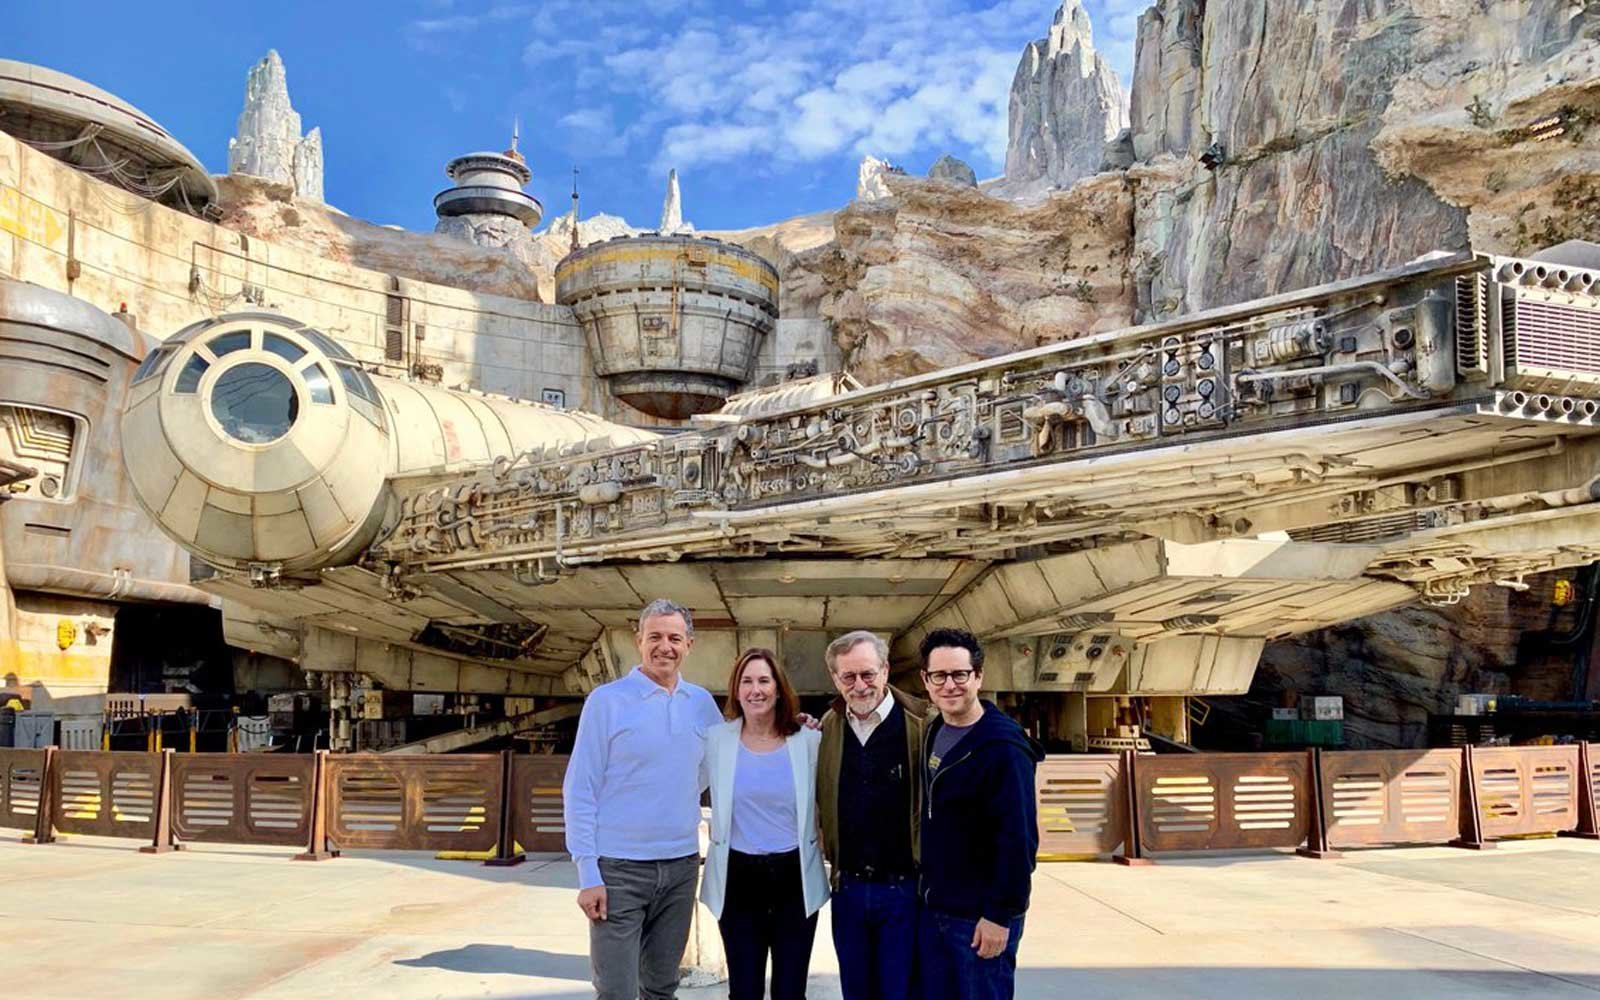 Steven Spielberg and J. J. Abrams Joined a Very Special Tour of Star Wars: Galaxy's Edge at Disneyland